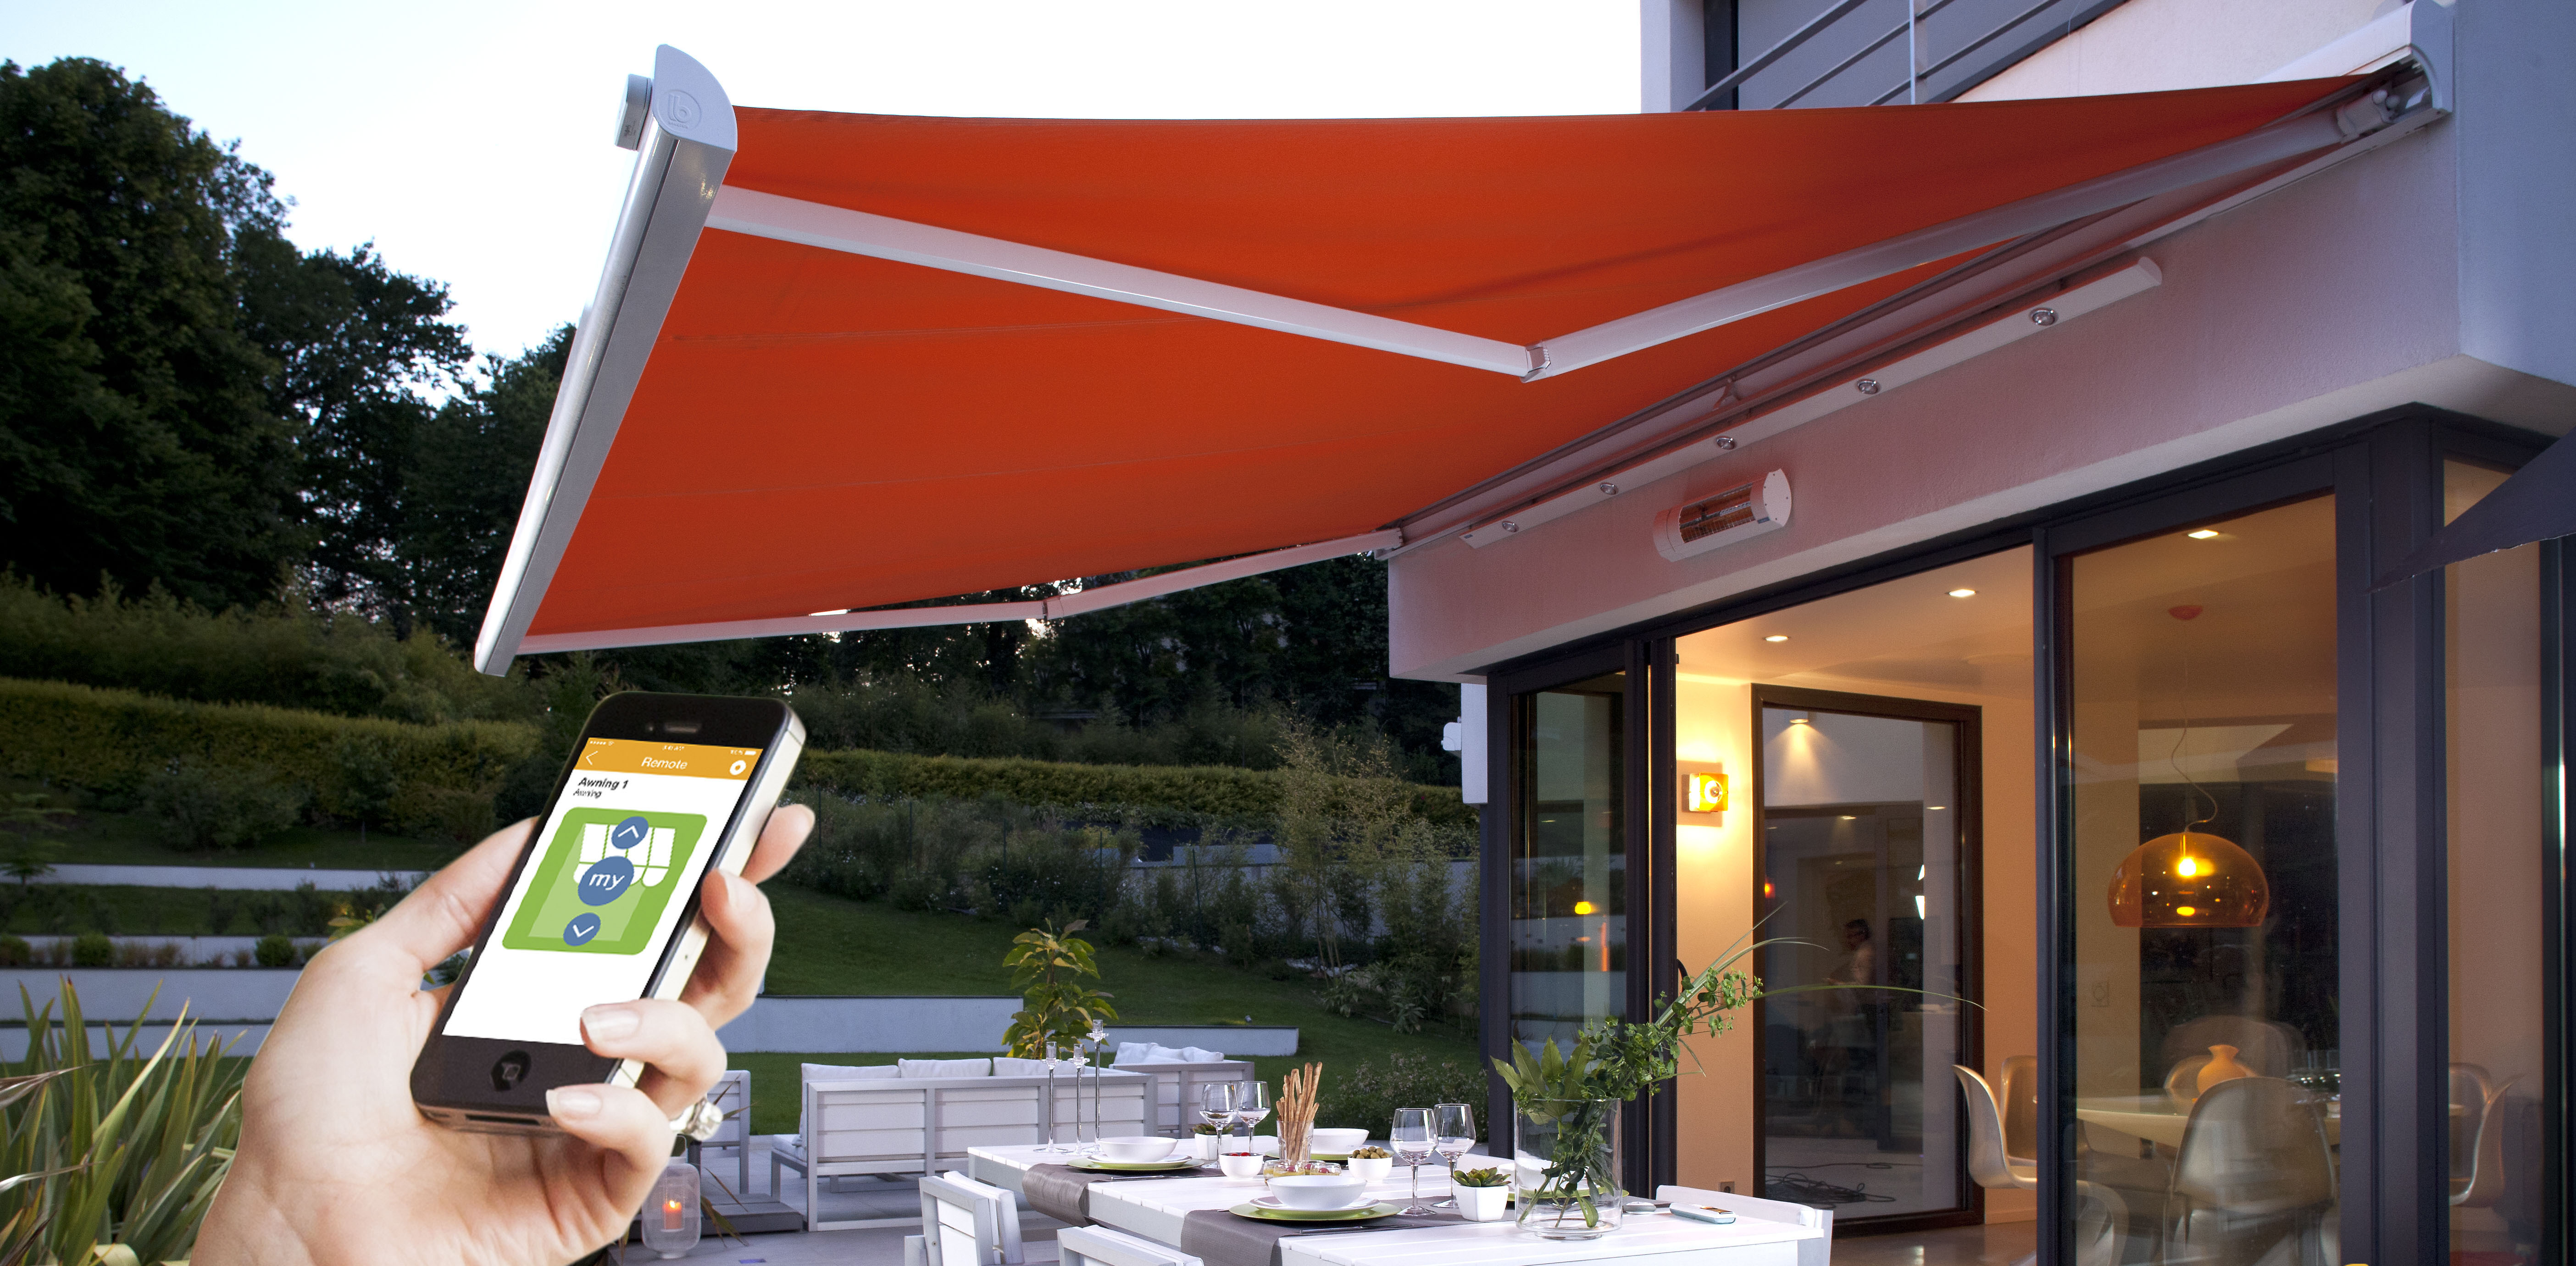 retractable awning banners arm awnings and curtains lateral bbq drop shades